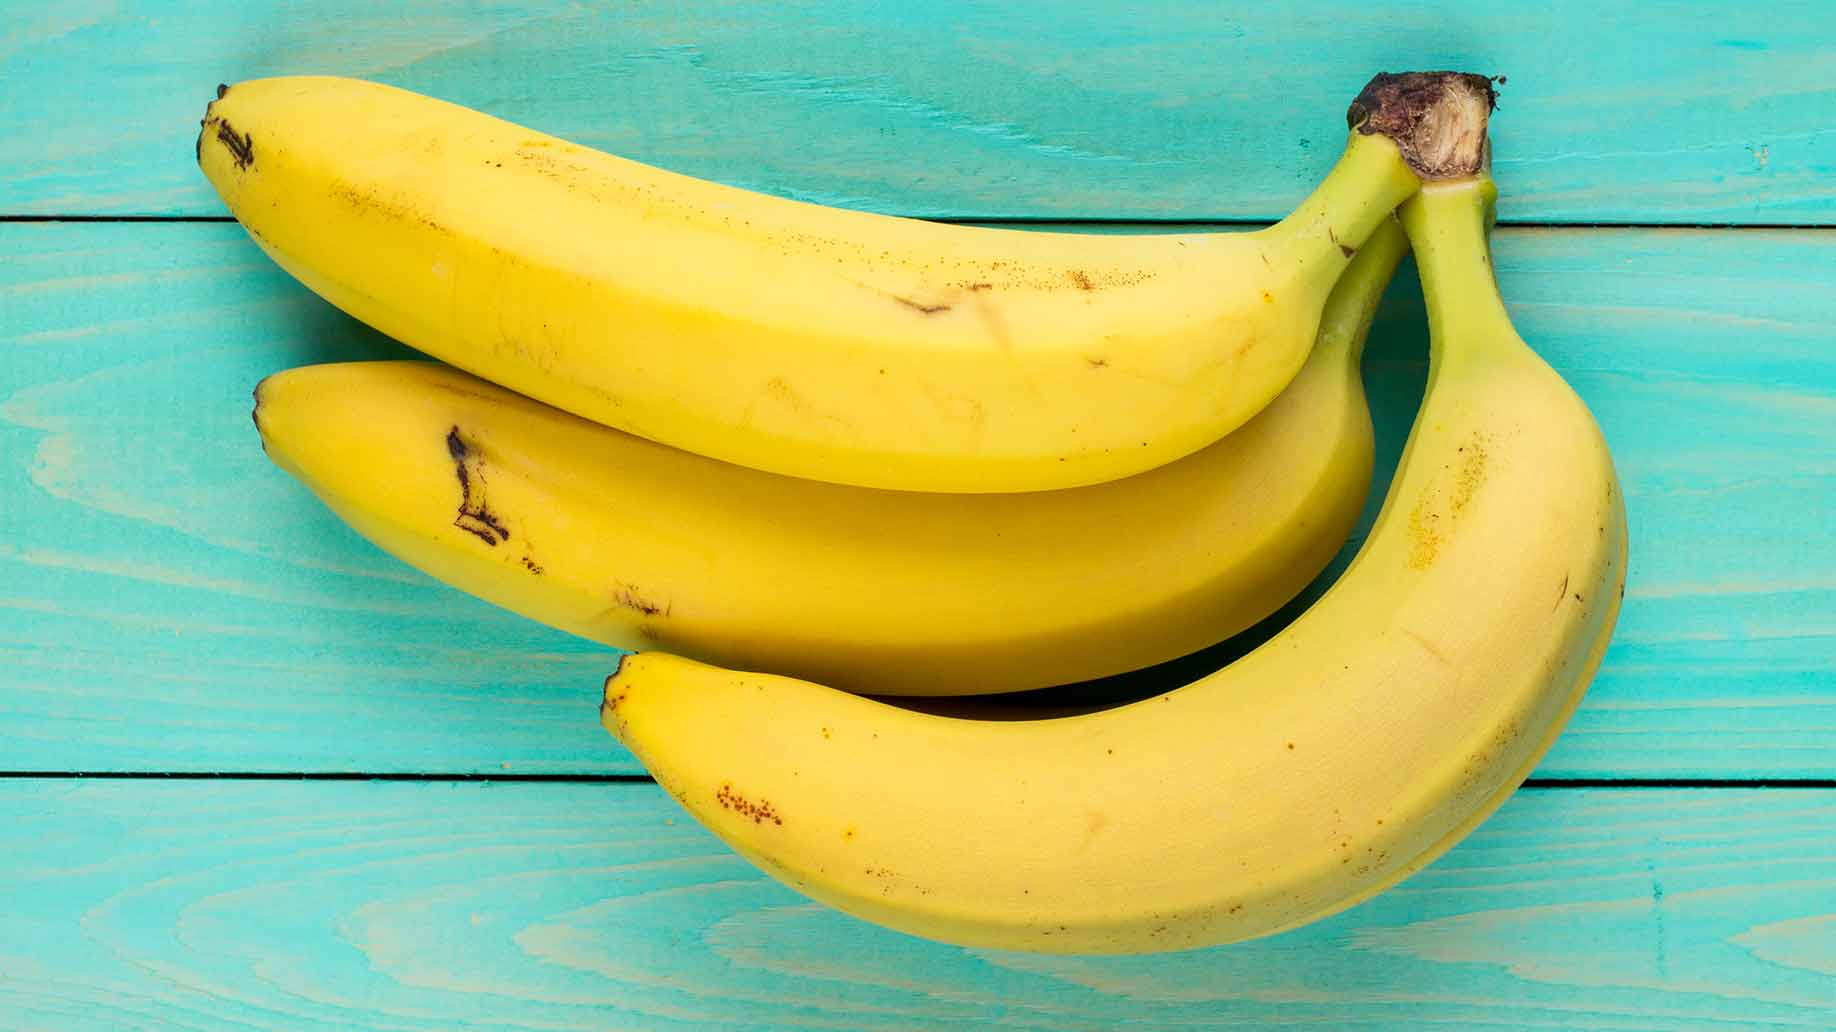 ripe yellow bananas batch teal background